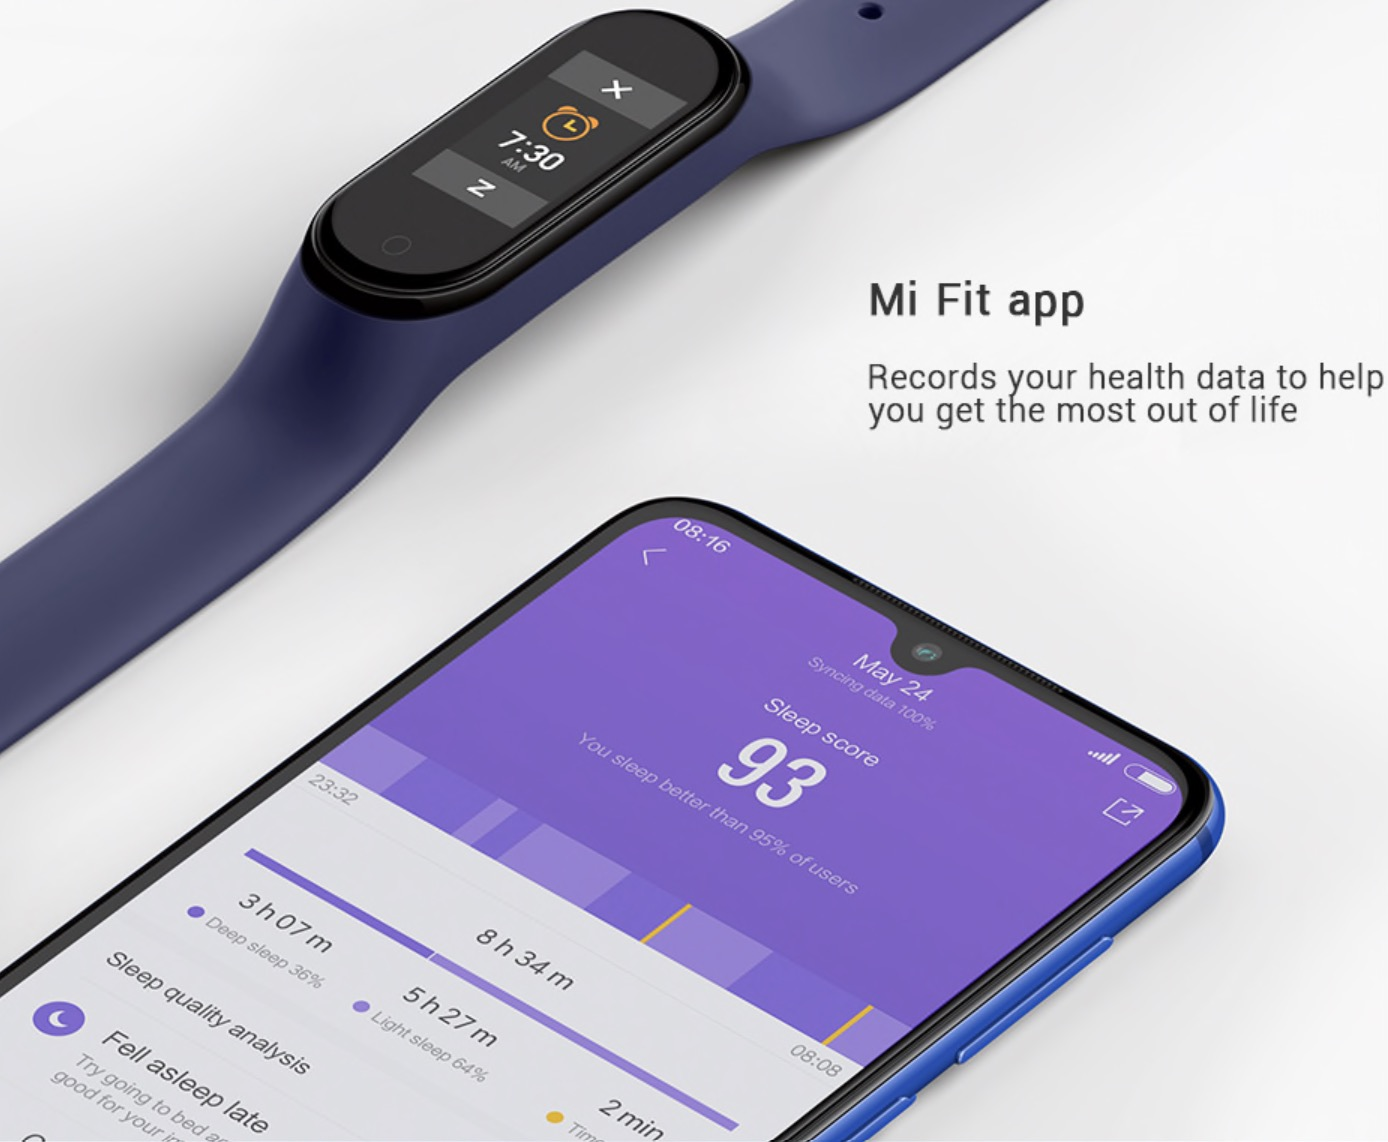 Mi Fit APP Not only does it provide continuous heart rate, sleep and other health data recording, it allows various activity modes and exercises which help to enhance your vitality and reduce fat.